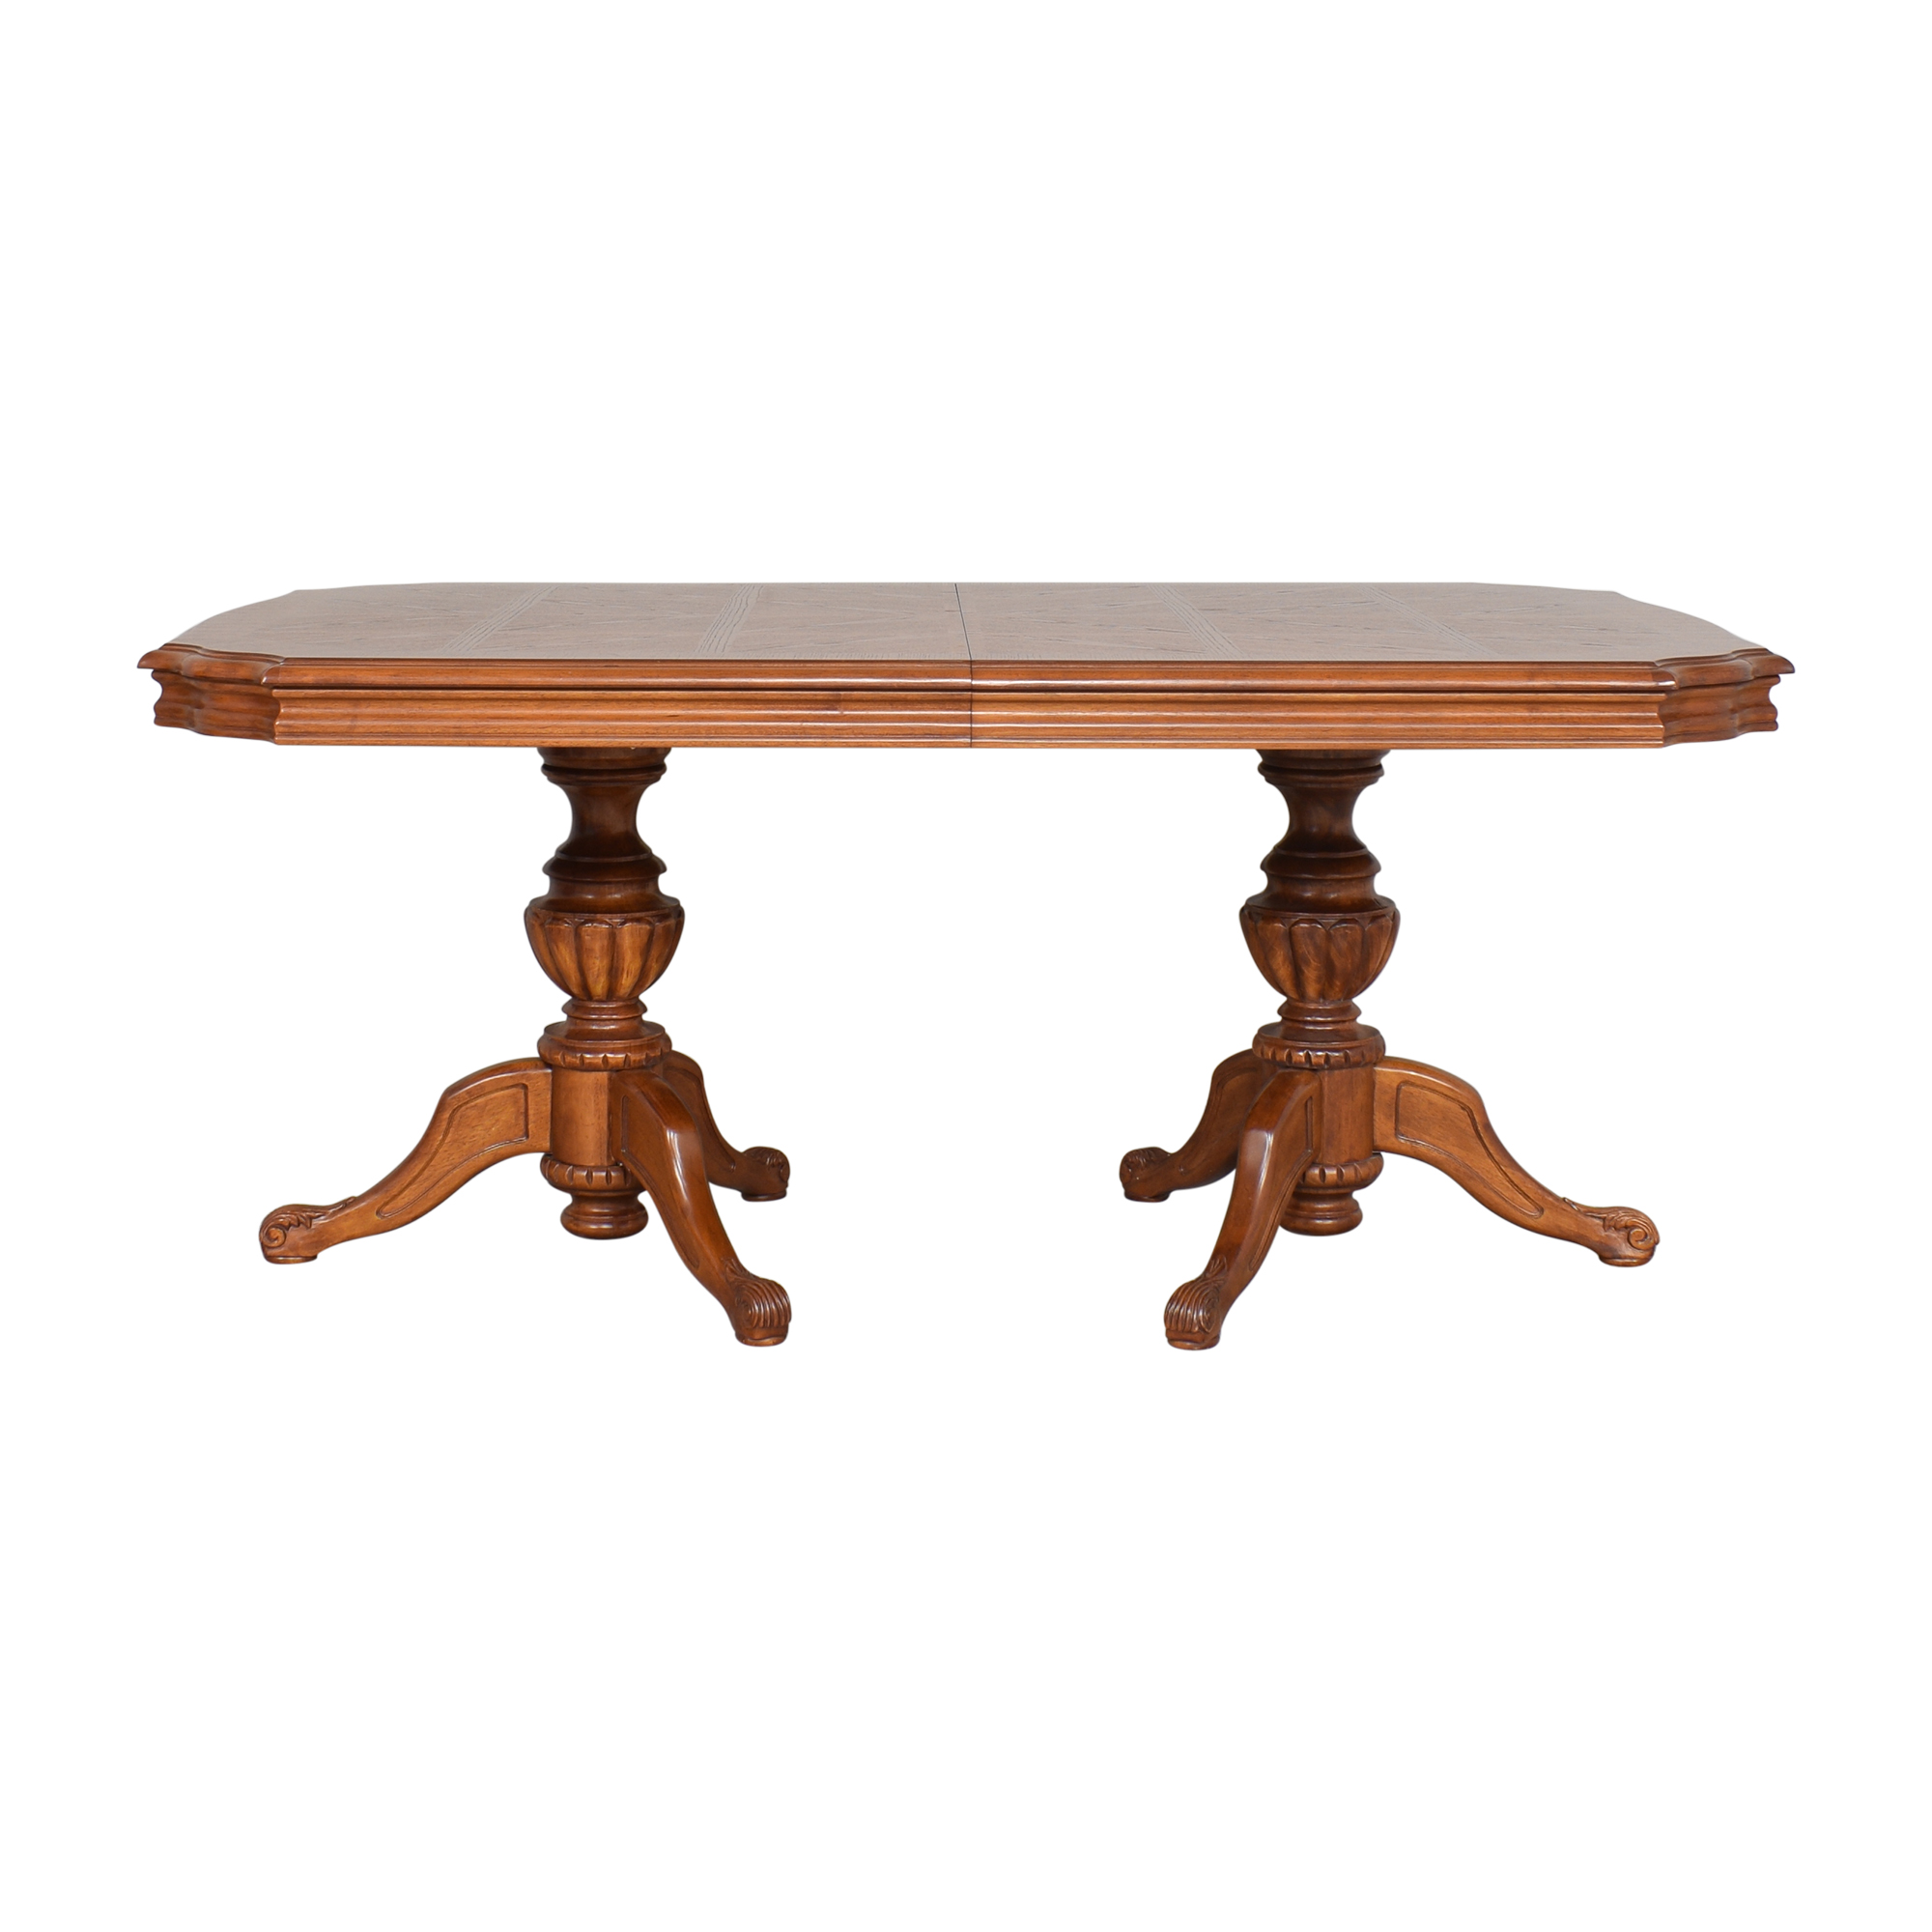 North Carolina Furniture Company North Carolina Furniture Extendable Dining Table pa